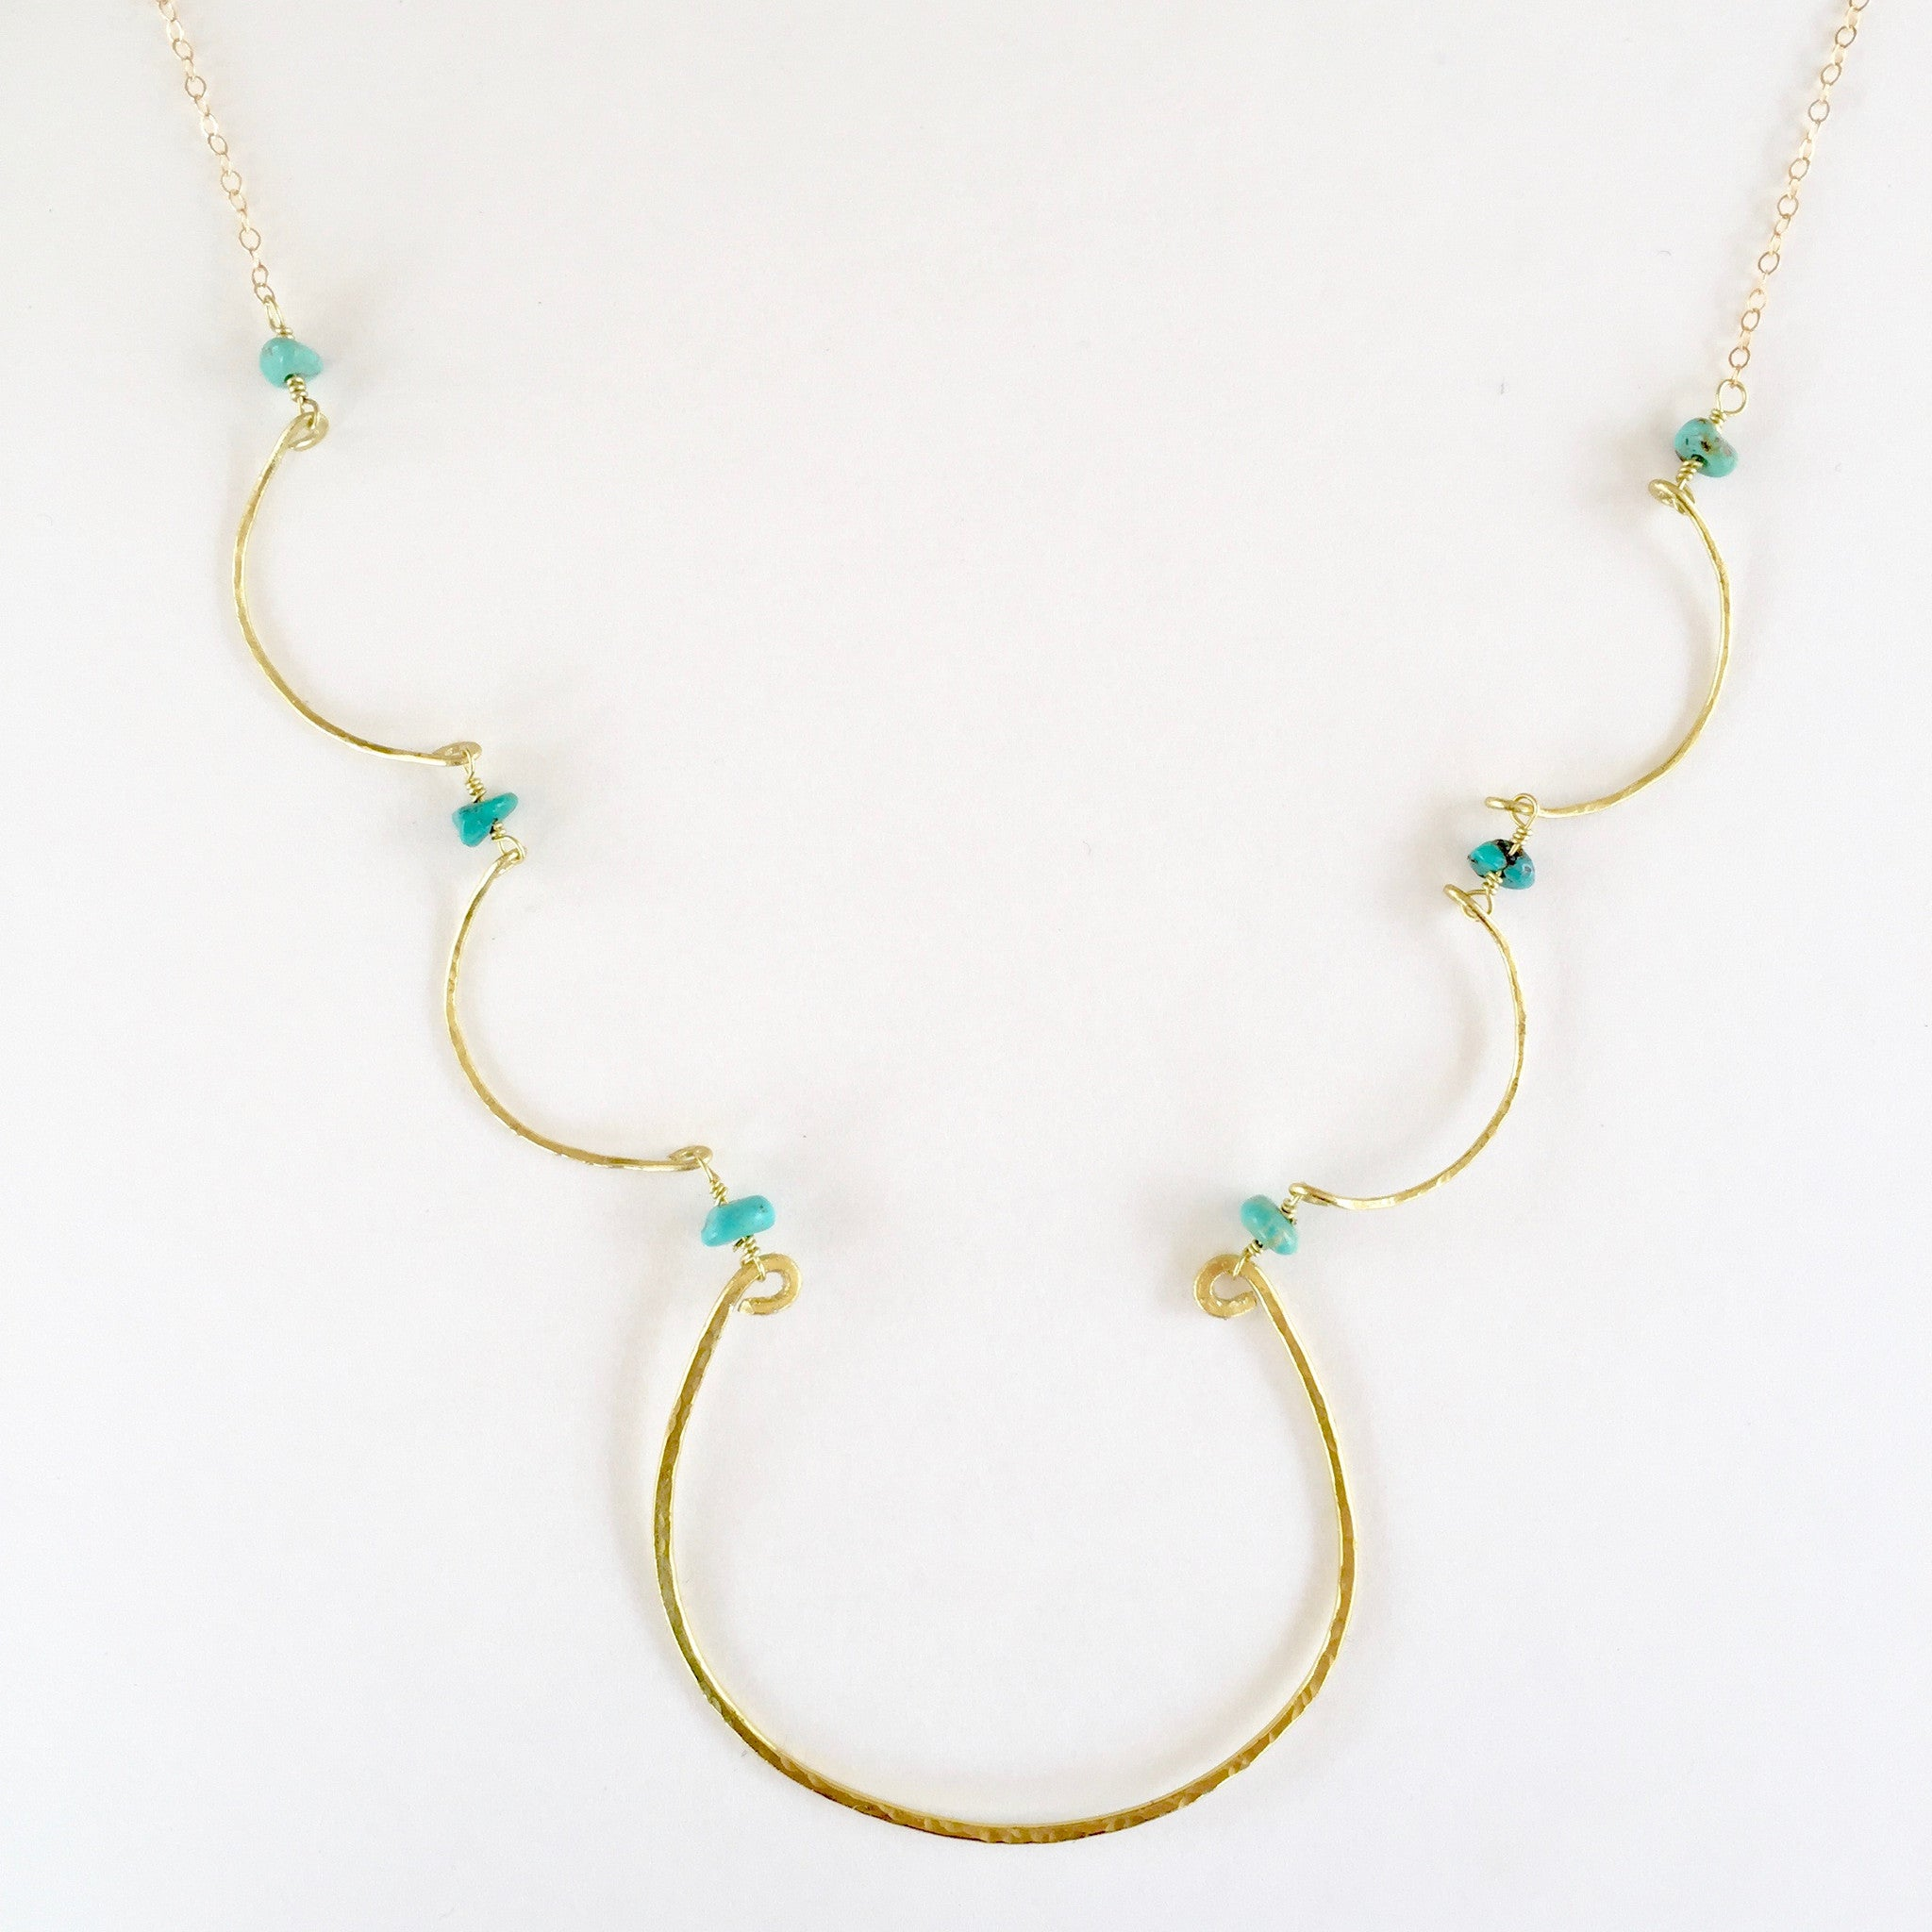 Simple Charlotte Necklace in Turquoise